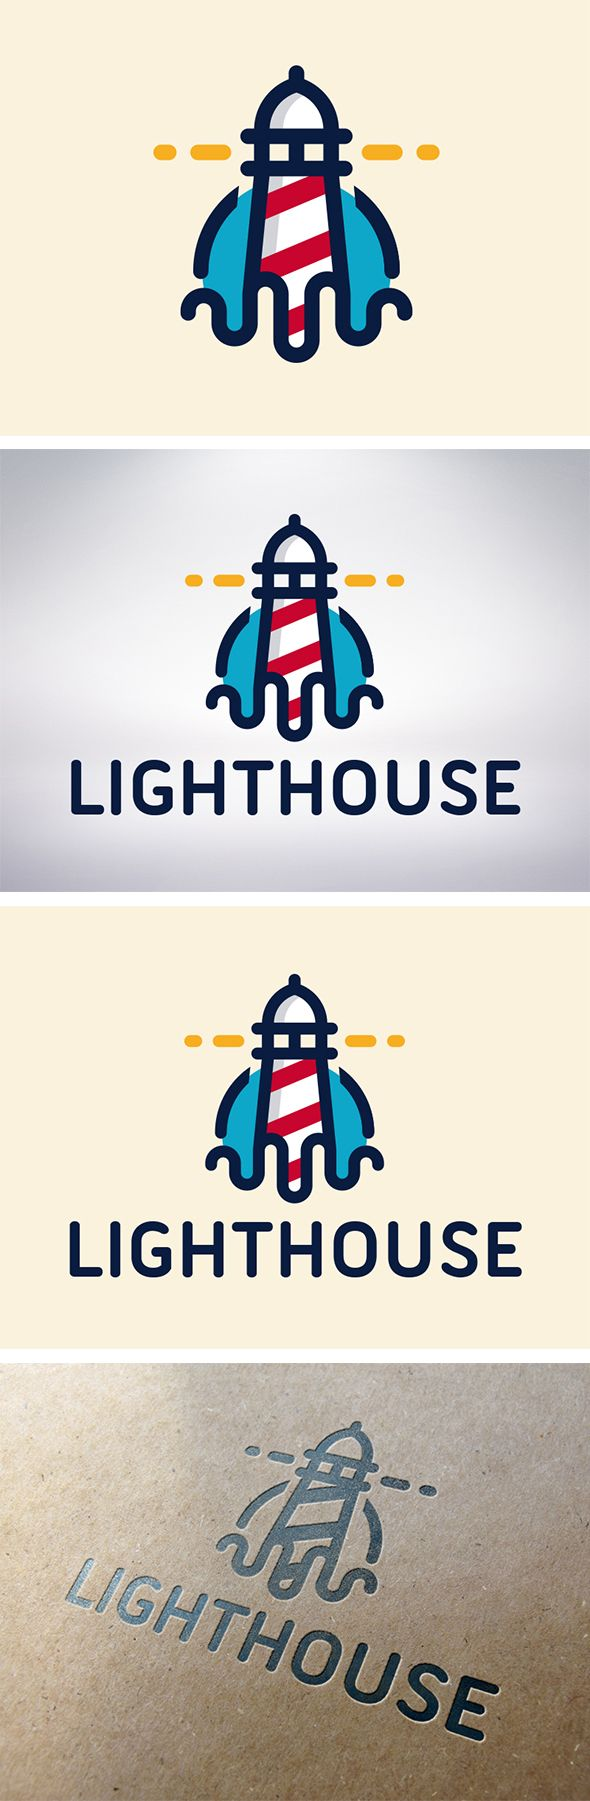 Crib for sale kelowna - Lighthouse On Sale Logo By Bosstwinsart Via Behance Curated By